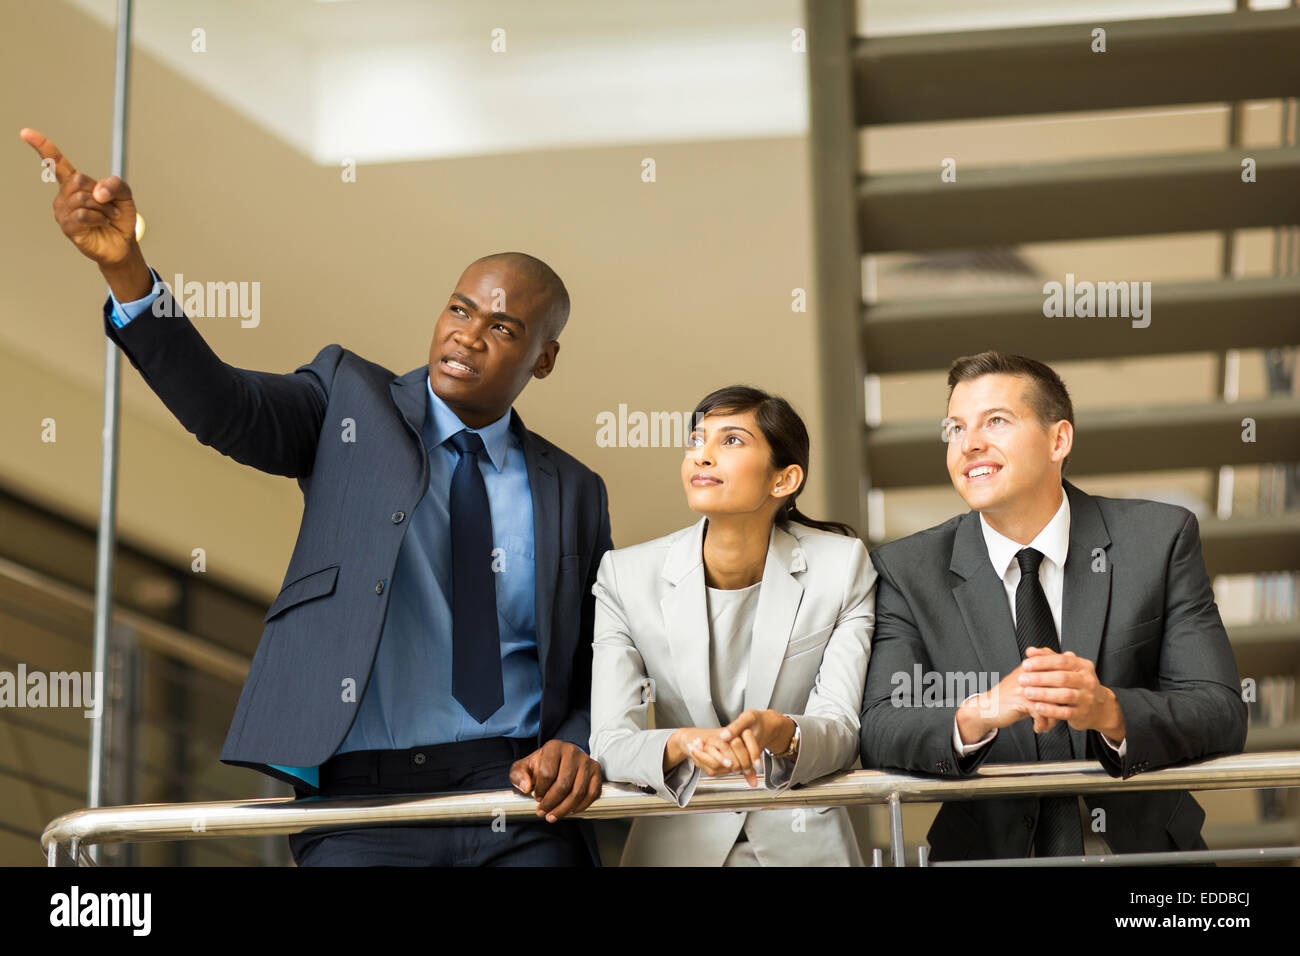 successful business group discussing work in modern office - Stock Image